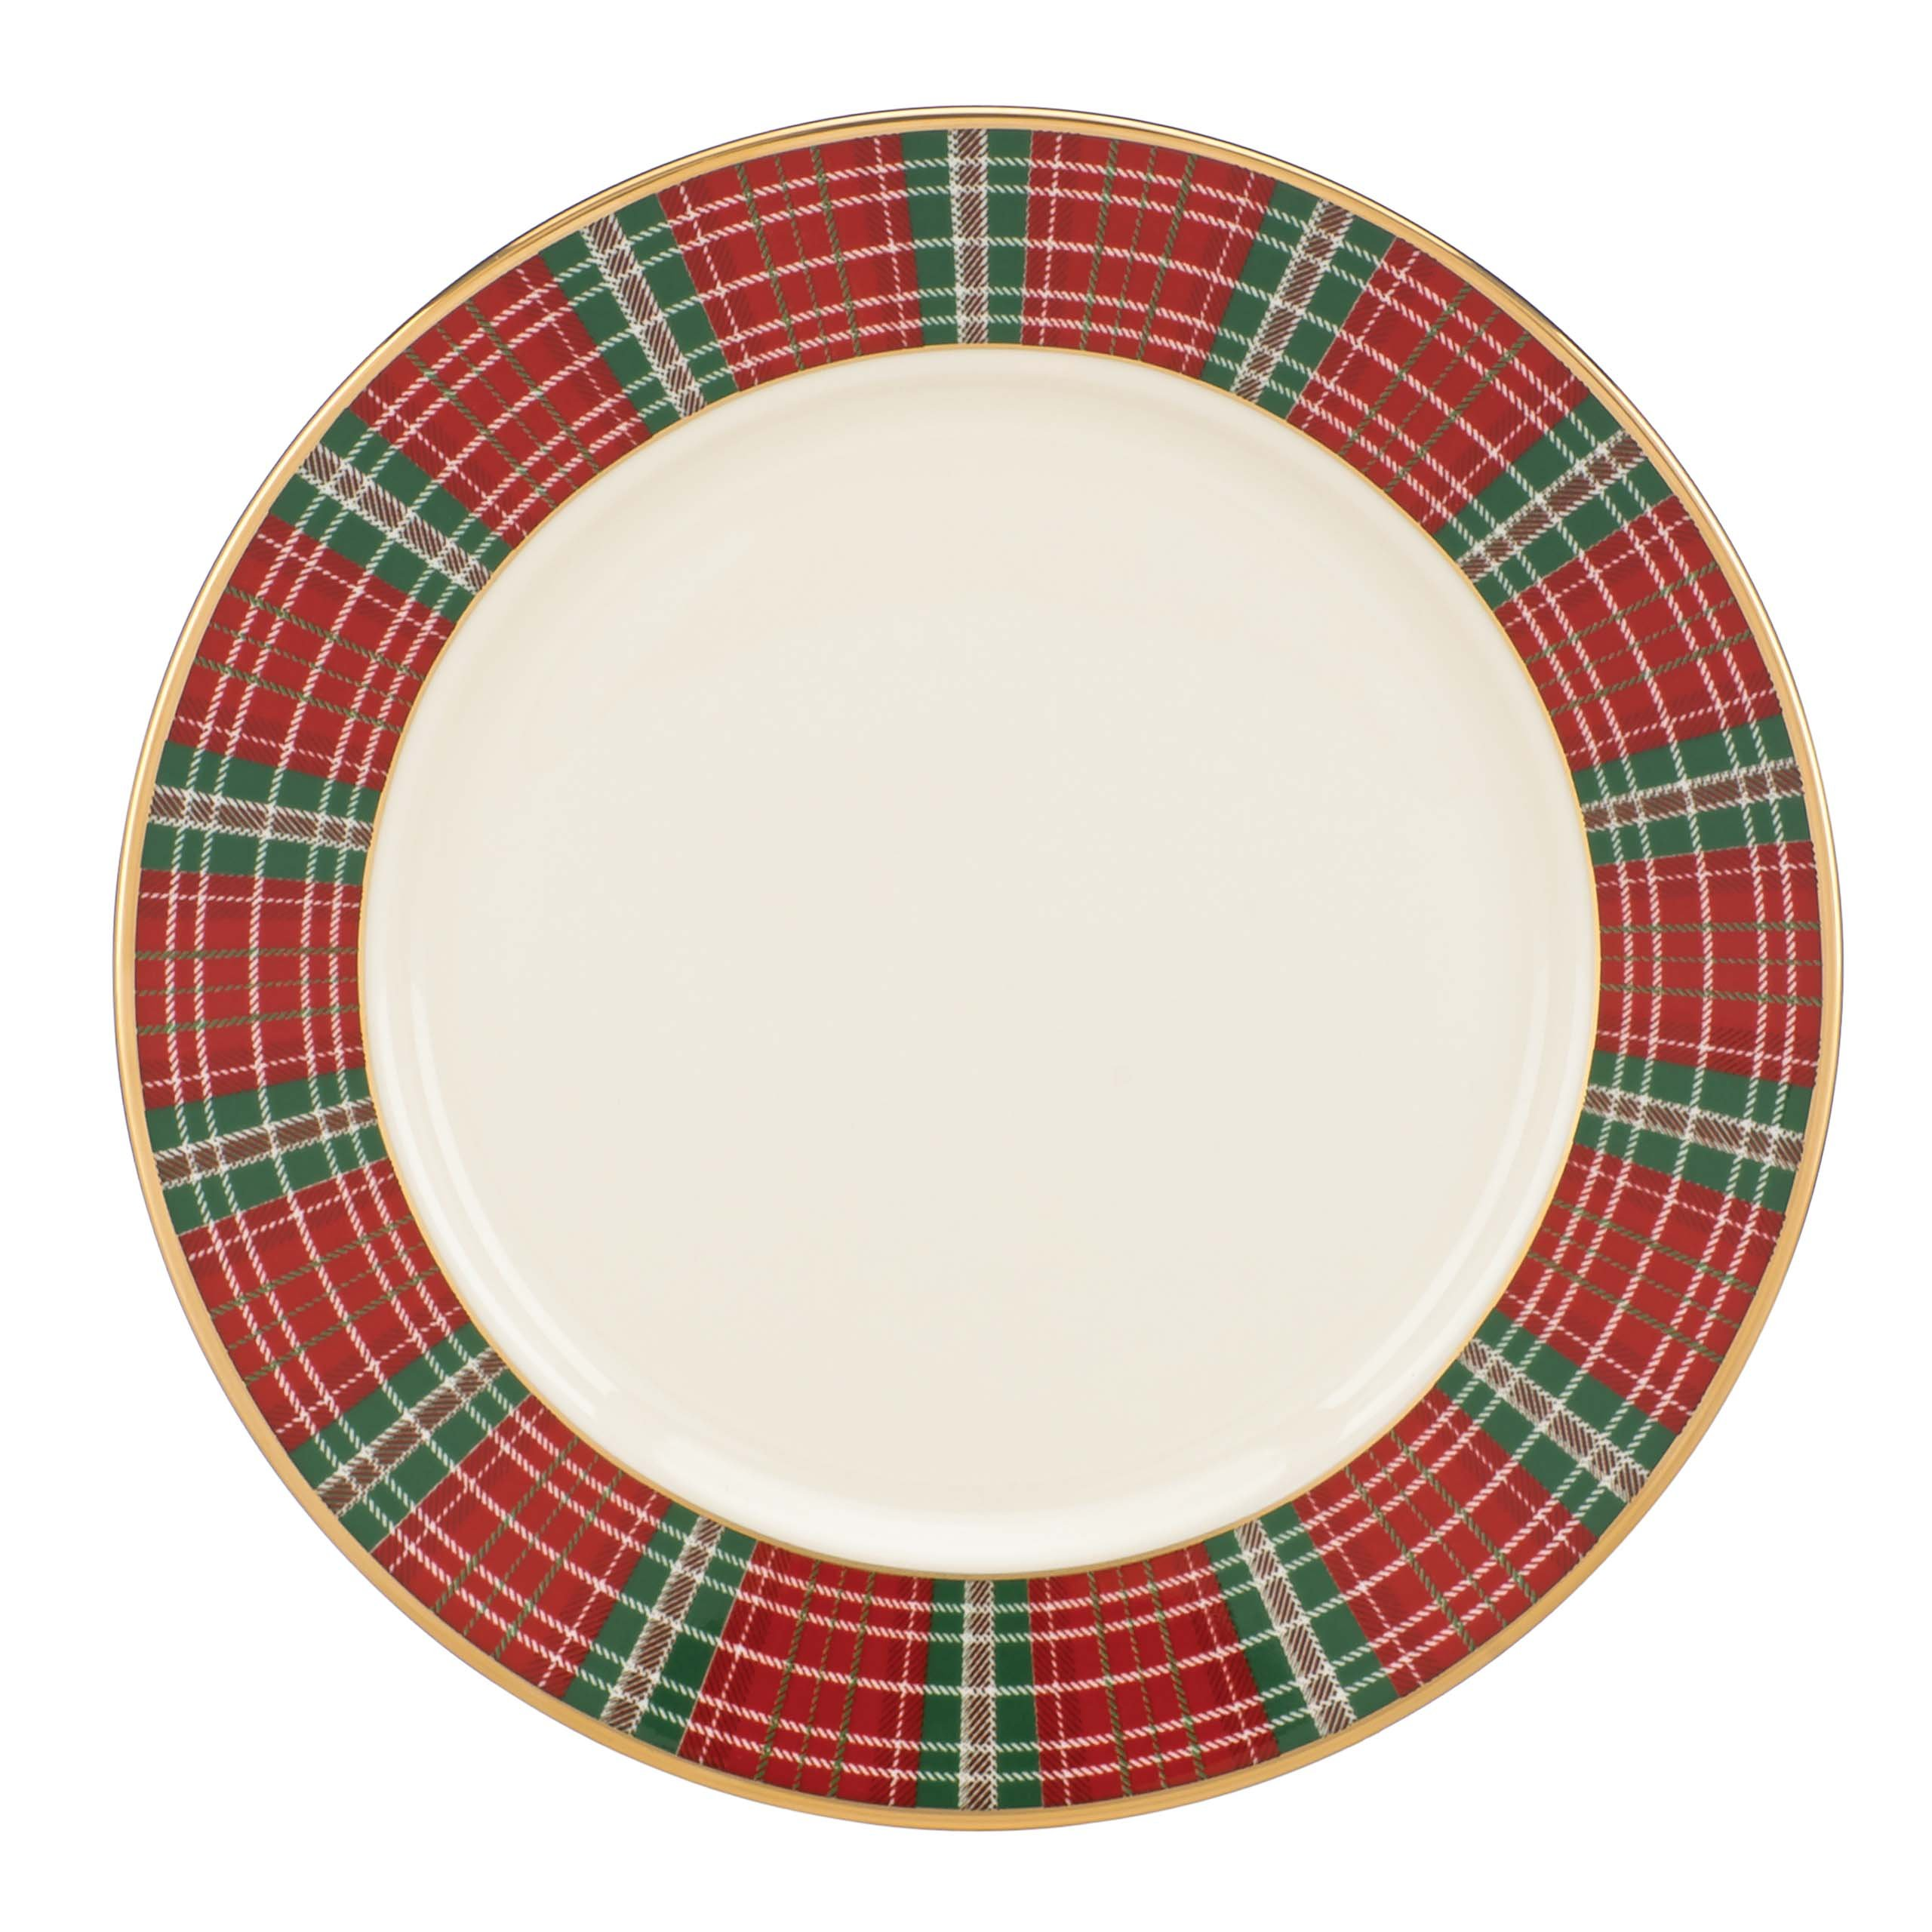 Lenox Winter Greetings Plaid Butter Plate, Ivory